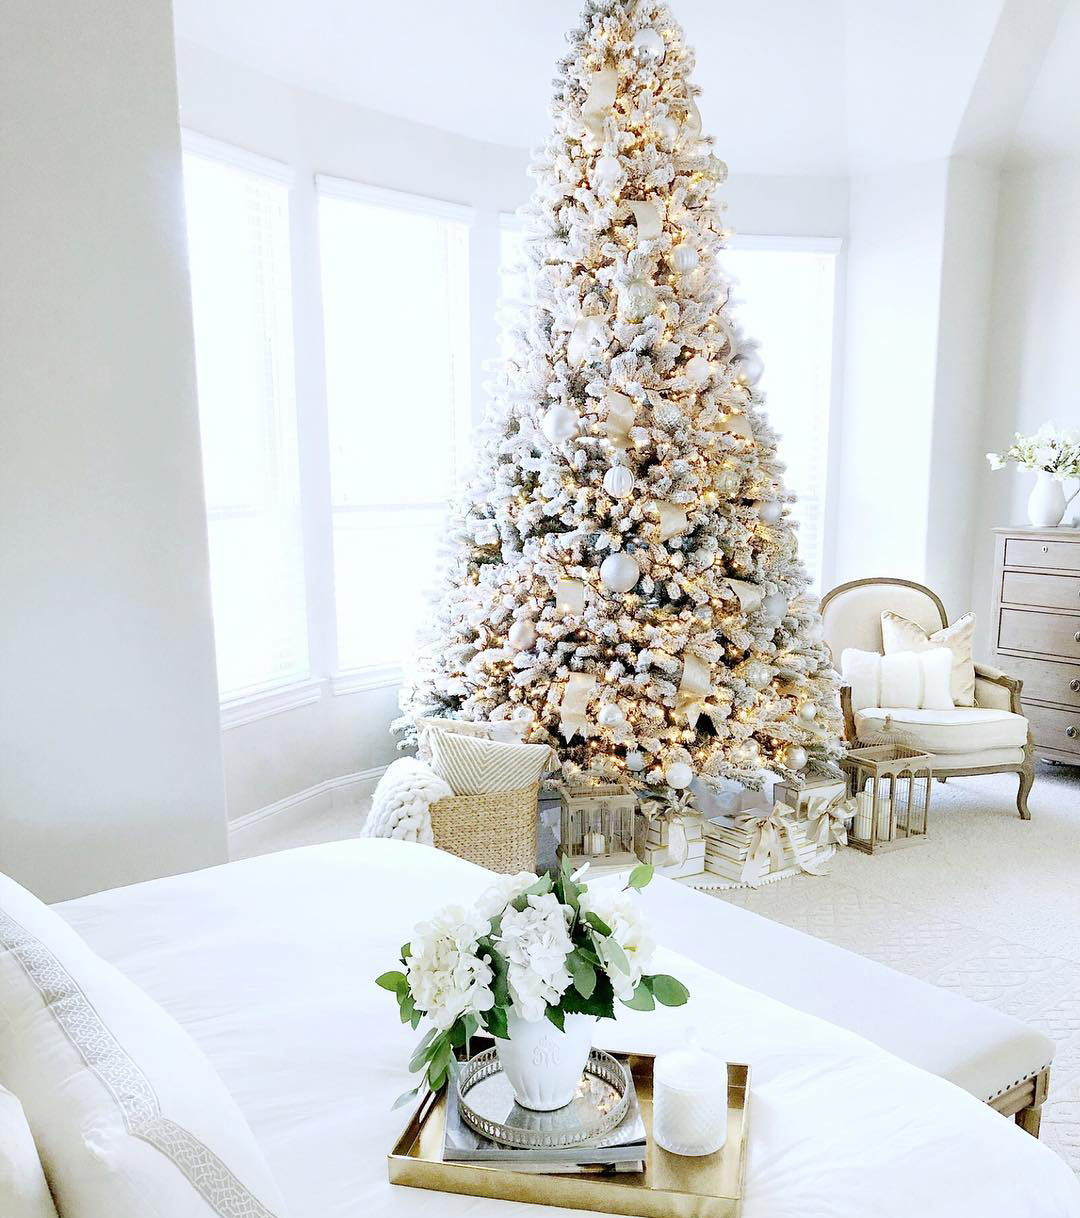 White Christmas Tree | My Texas House Blog